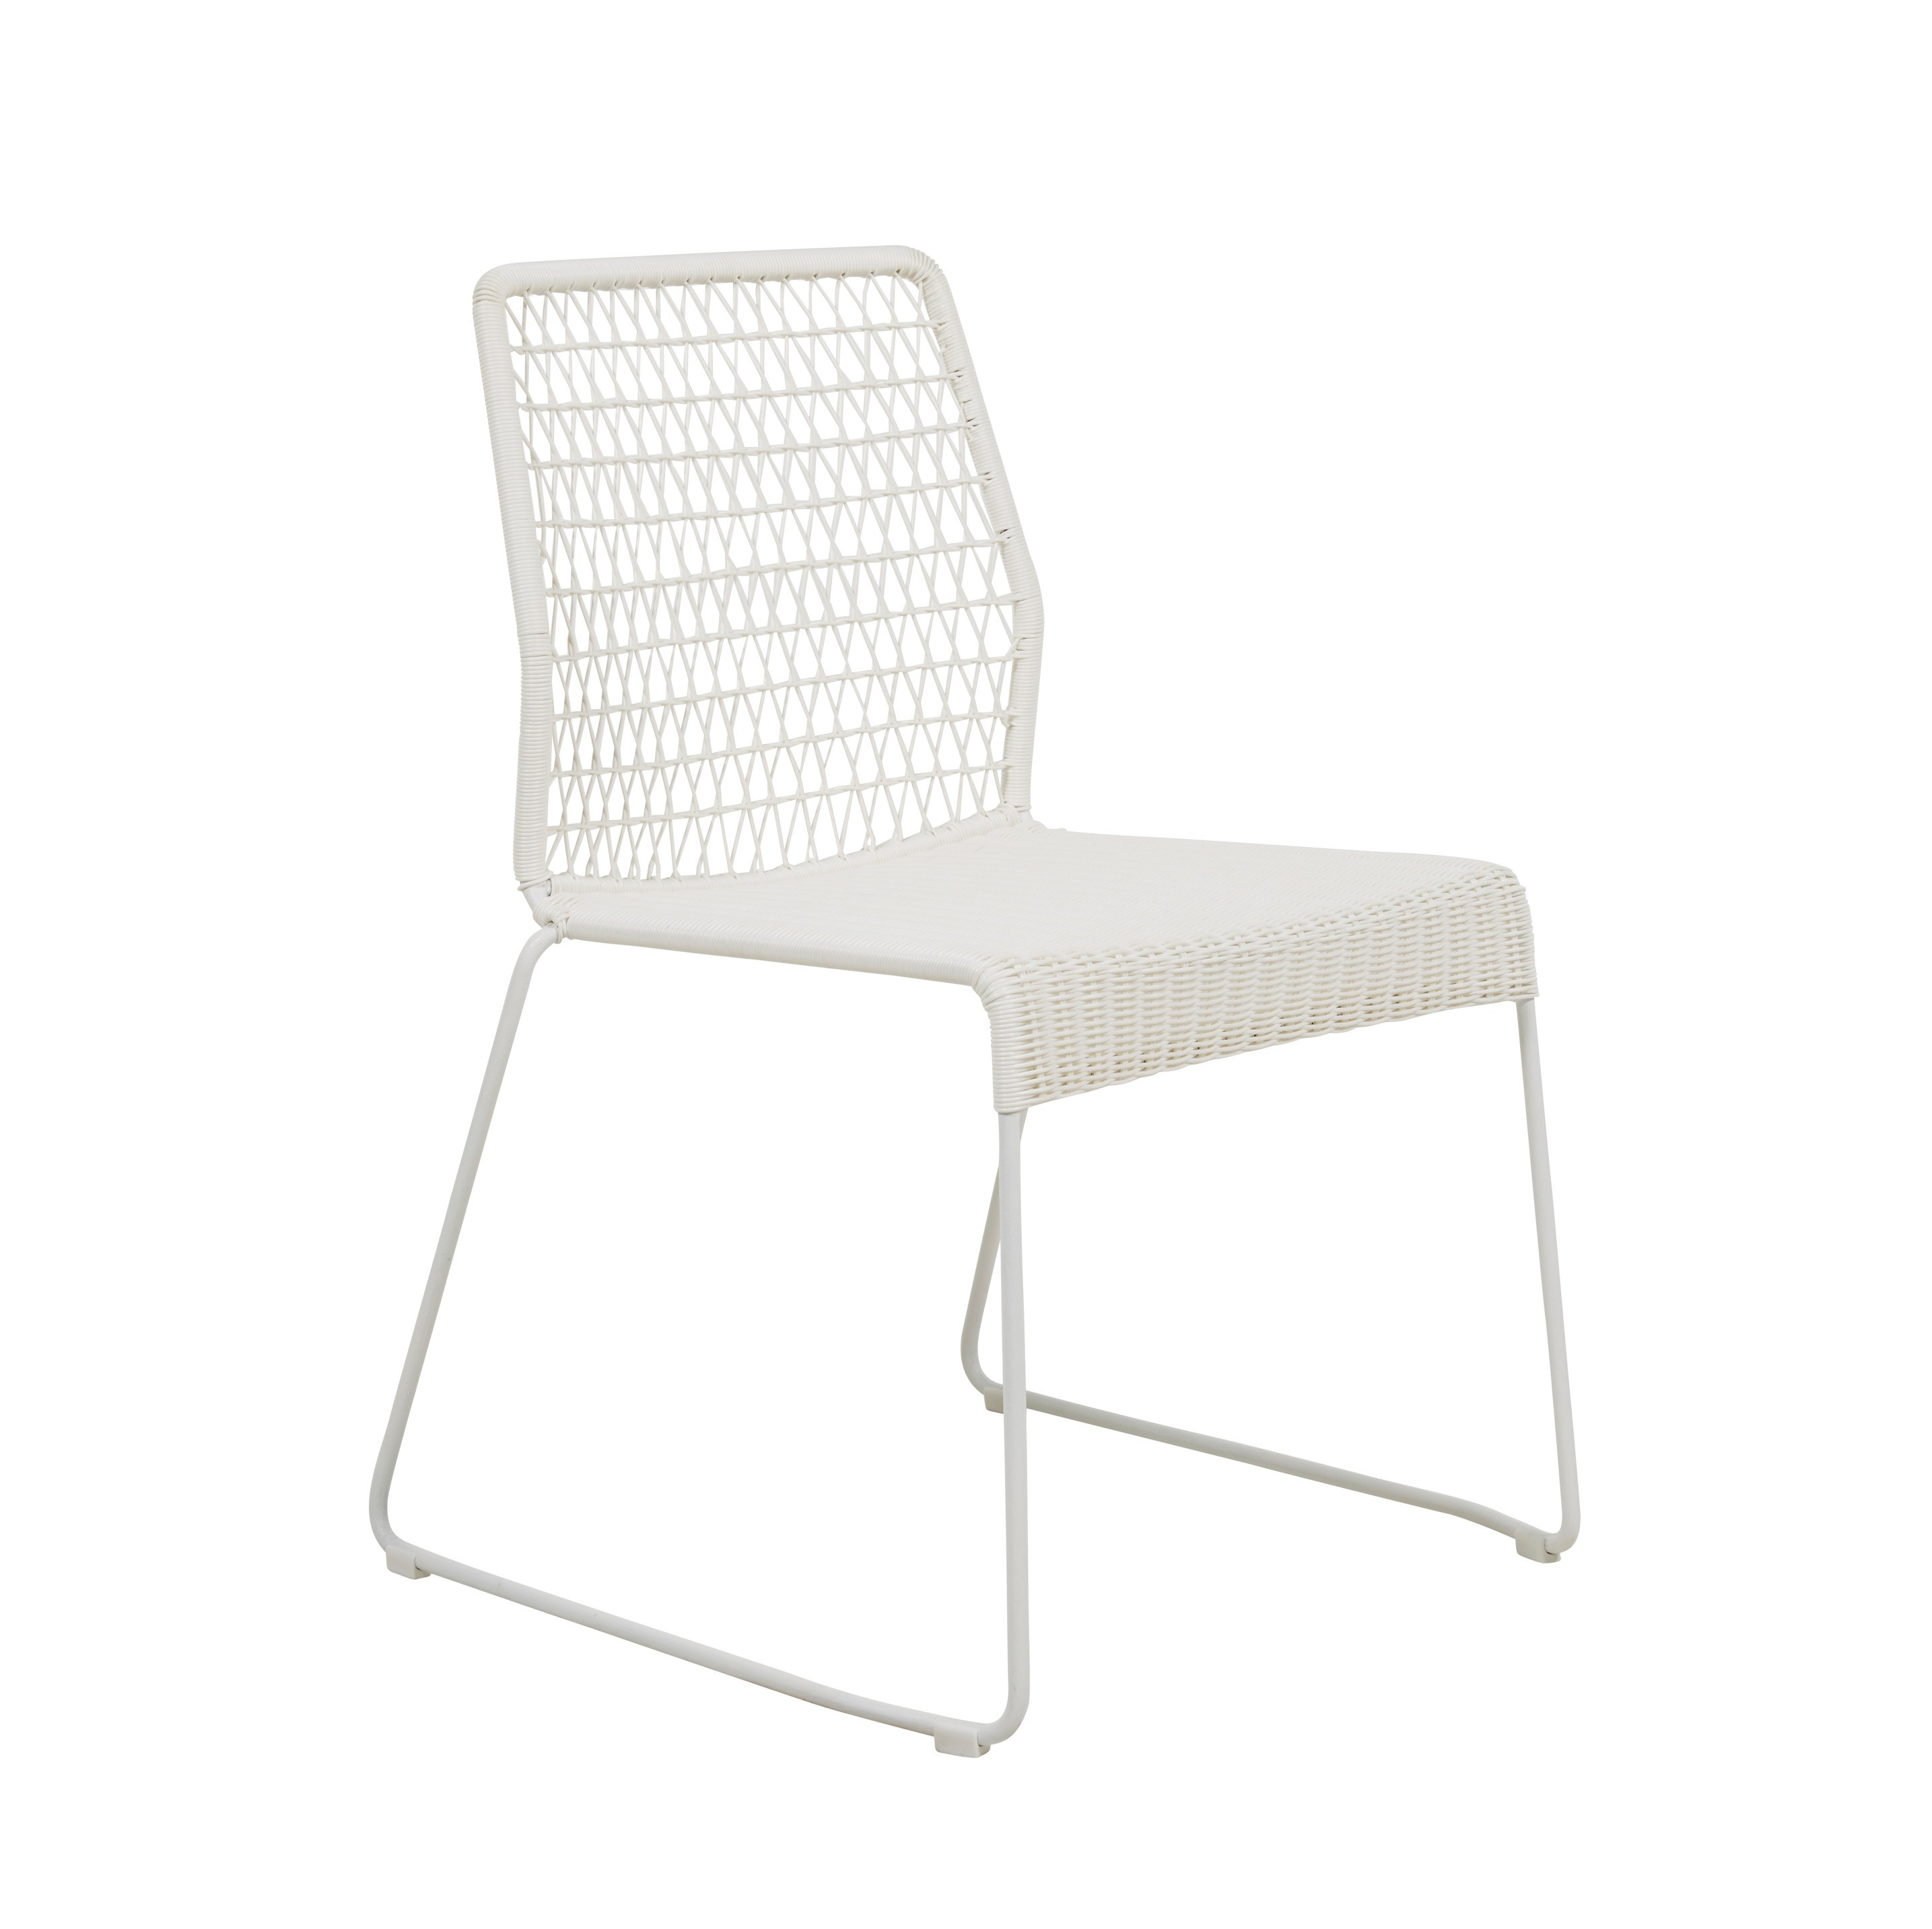 Furniture Hero-Images Dining-Chairs-Benches-and-Stools granada-twist-02